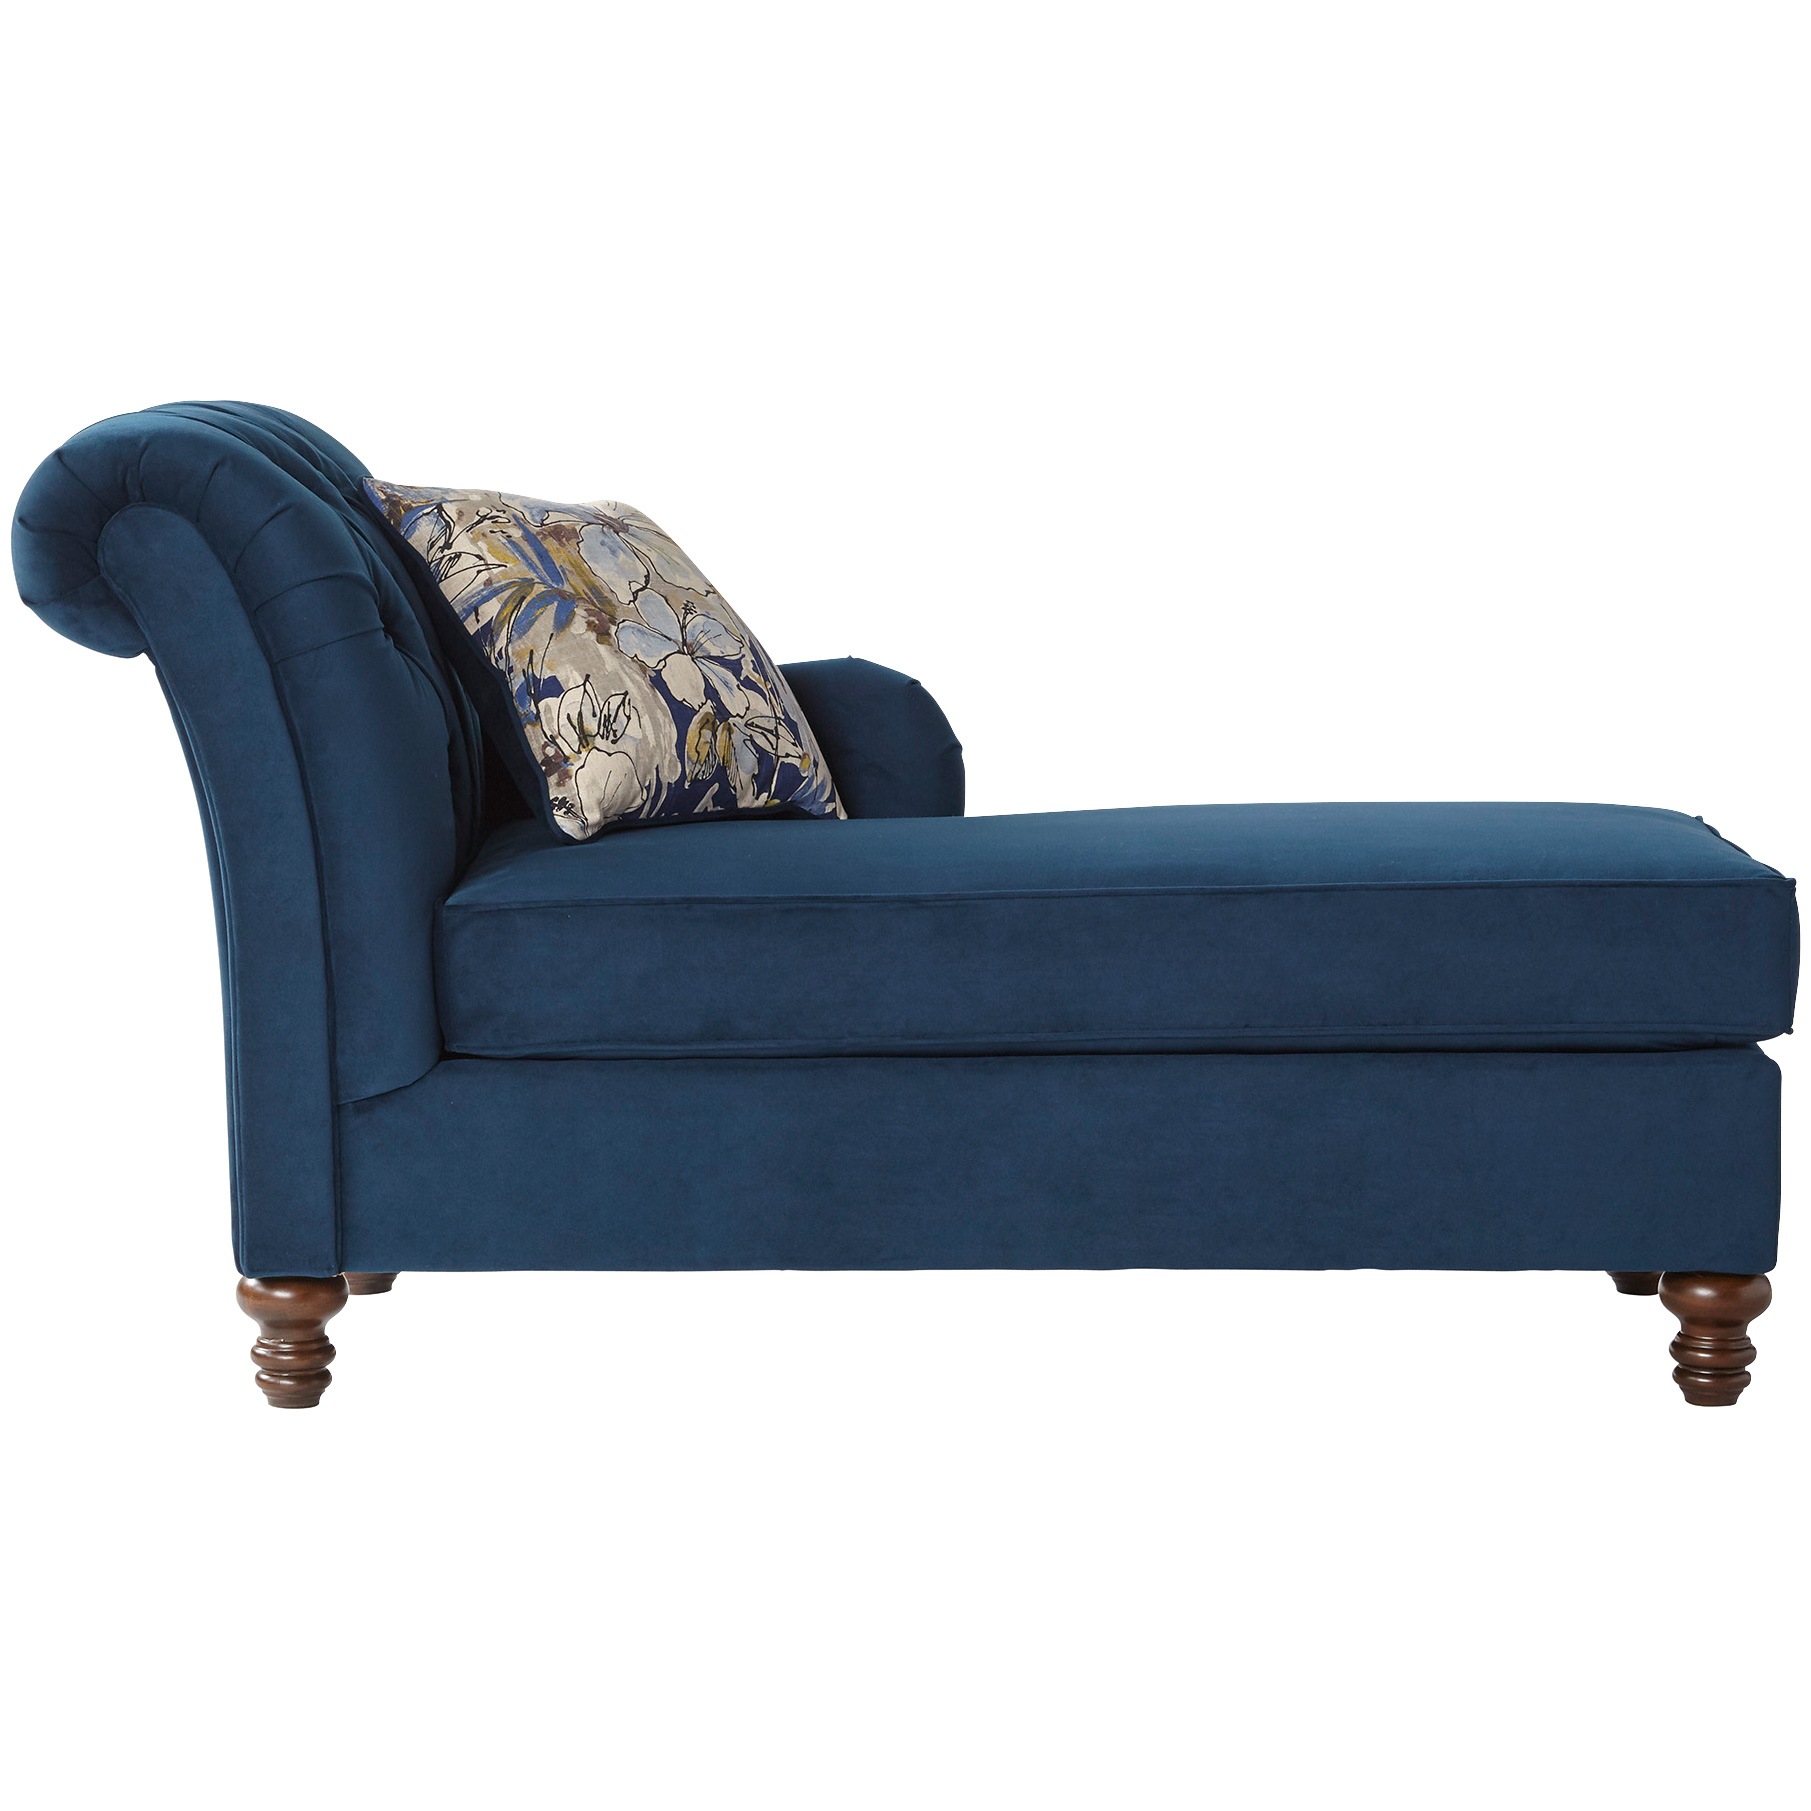 Serta Upholstery By Hughes Furniture | Ansburn Bing Indigo Chaise Lounge